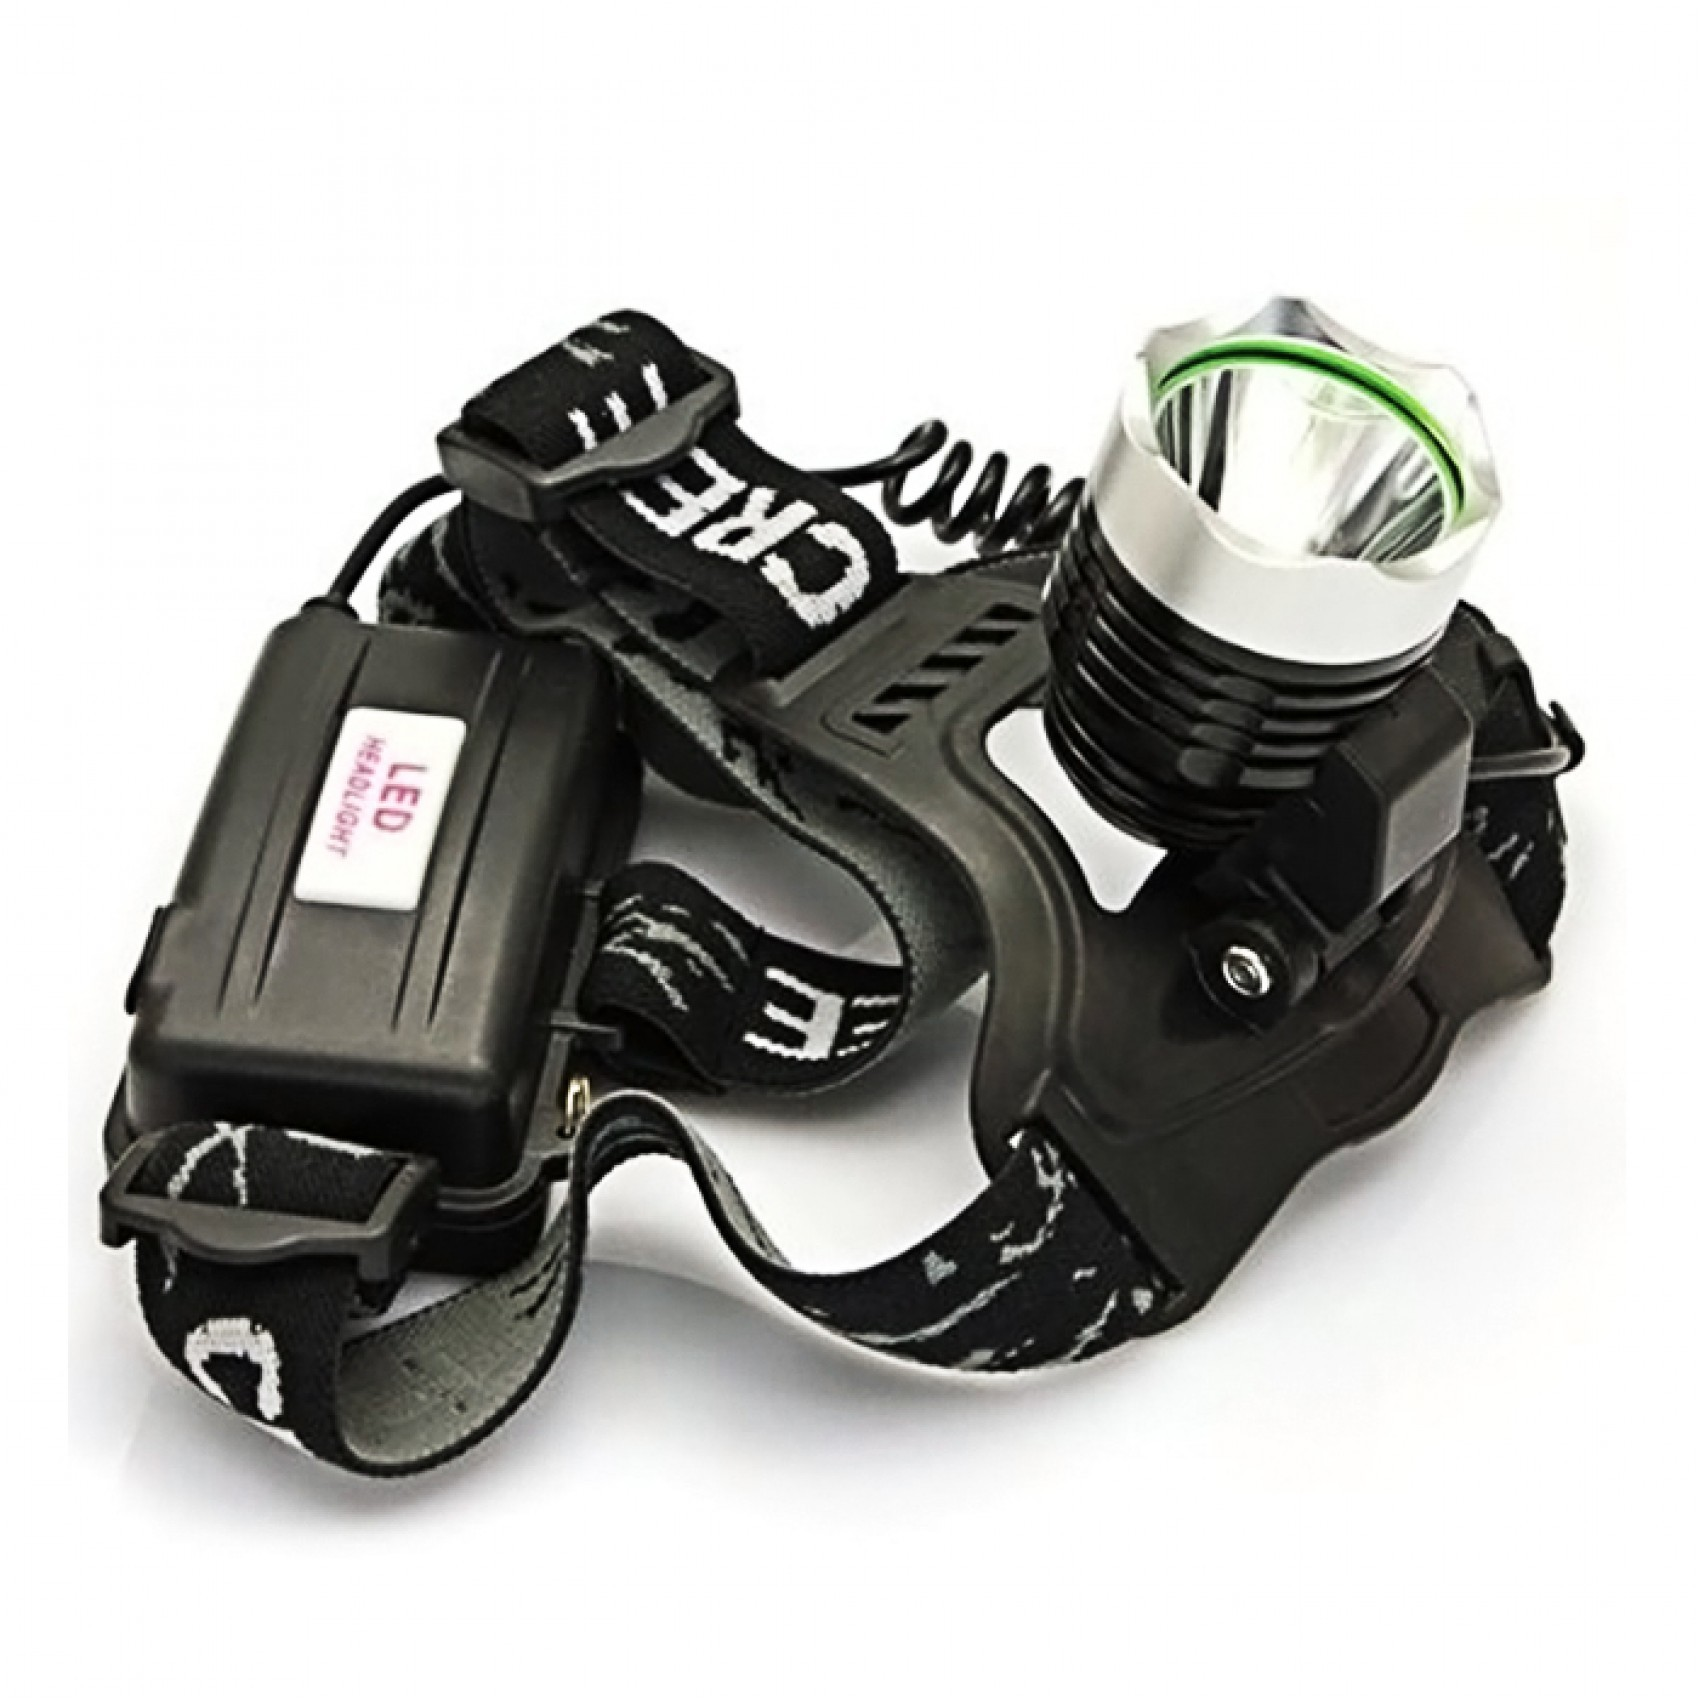 High Power Headlamps - Black